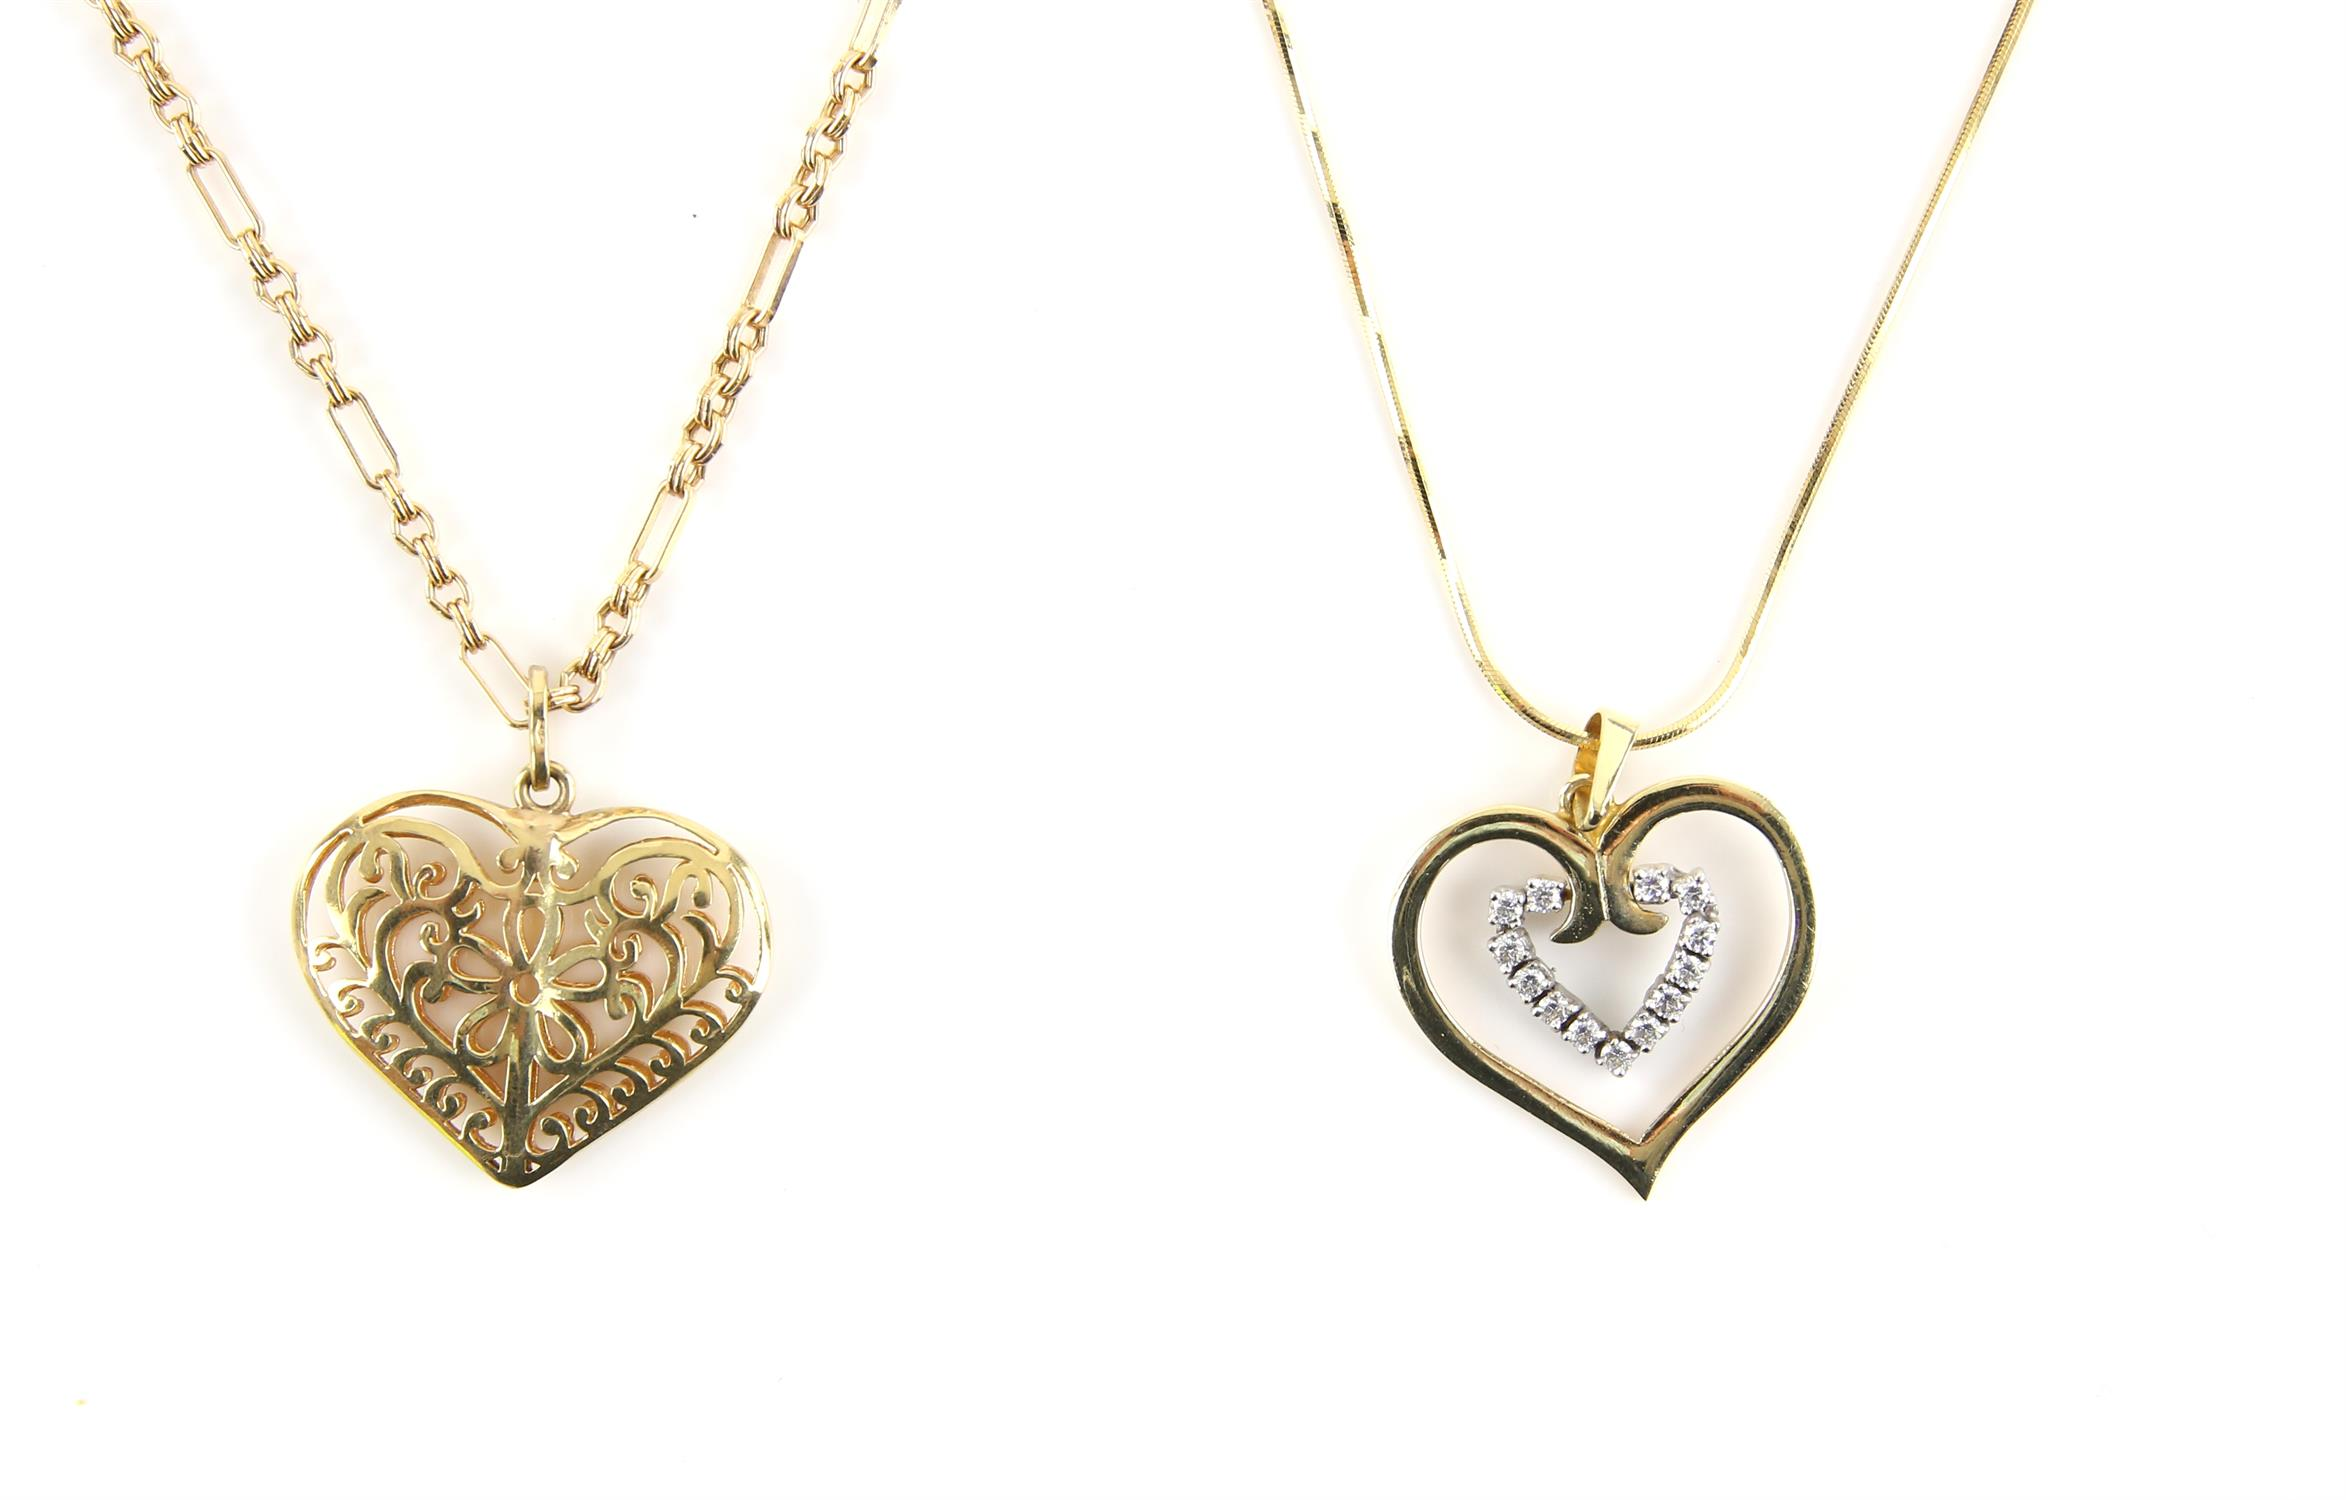 Two heart necklaces, including a filigree puff heart on a fancy link chain, in 9 ct,